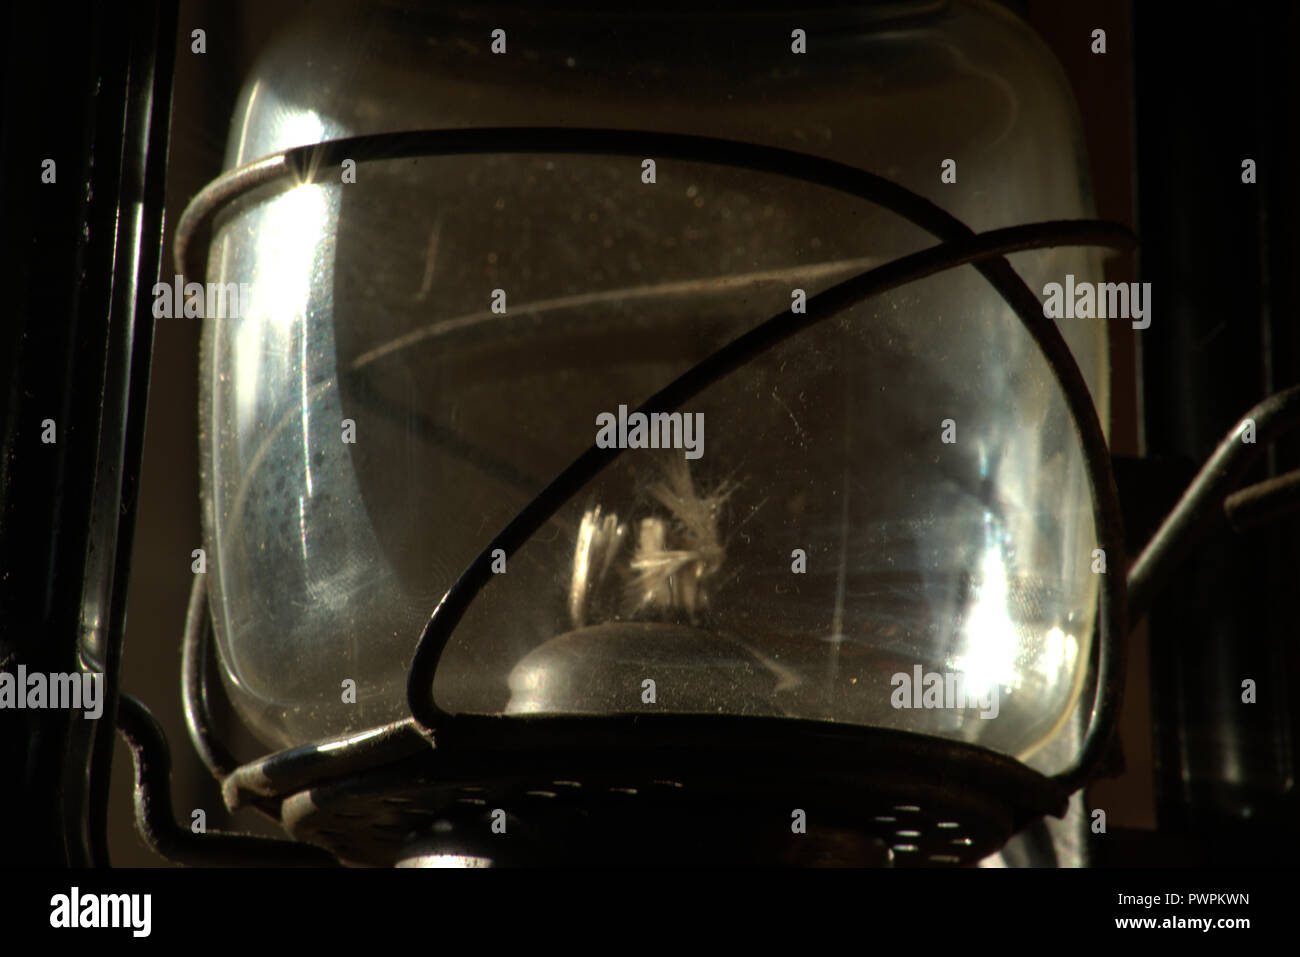 Hurricane or kerosene lamp Stock Photo